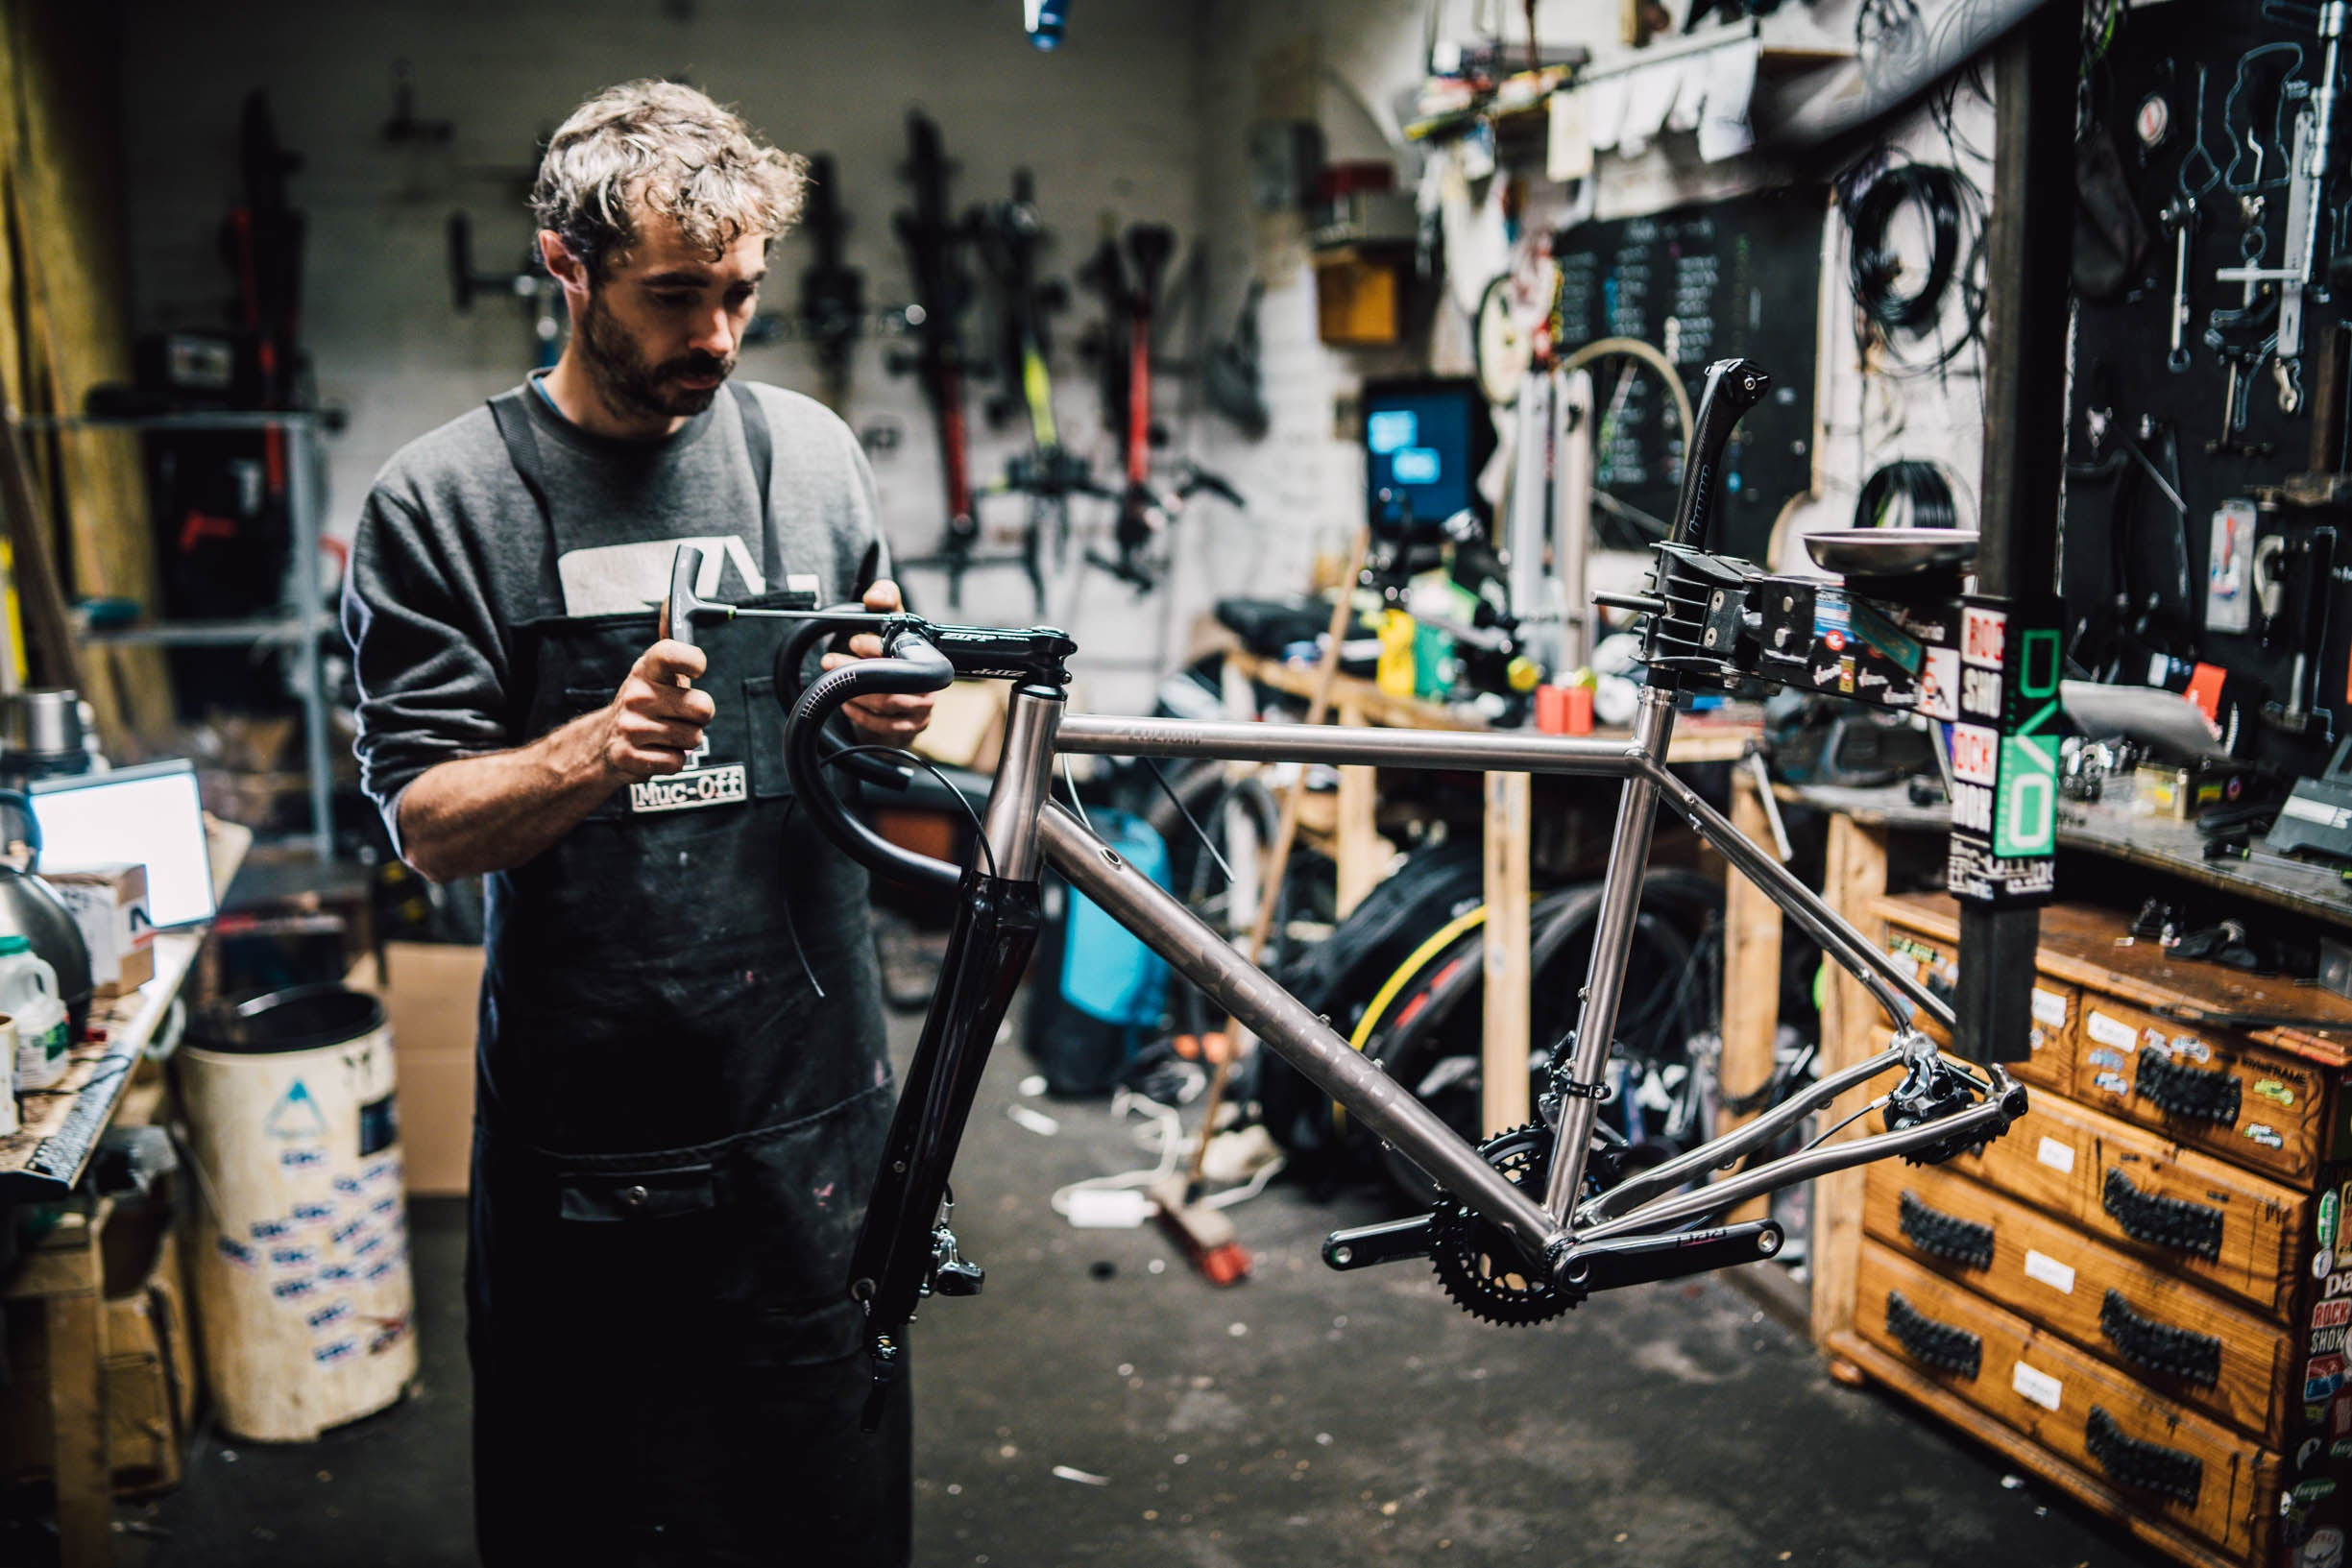 Routine maintenance bike checks - Alpkit